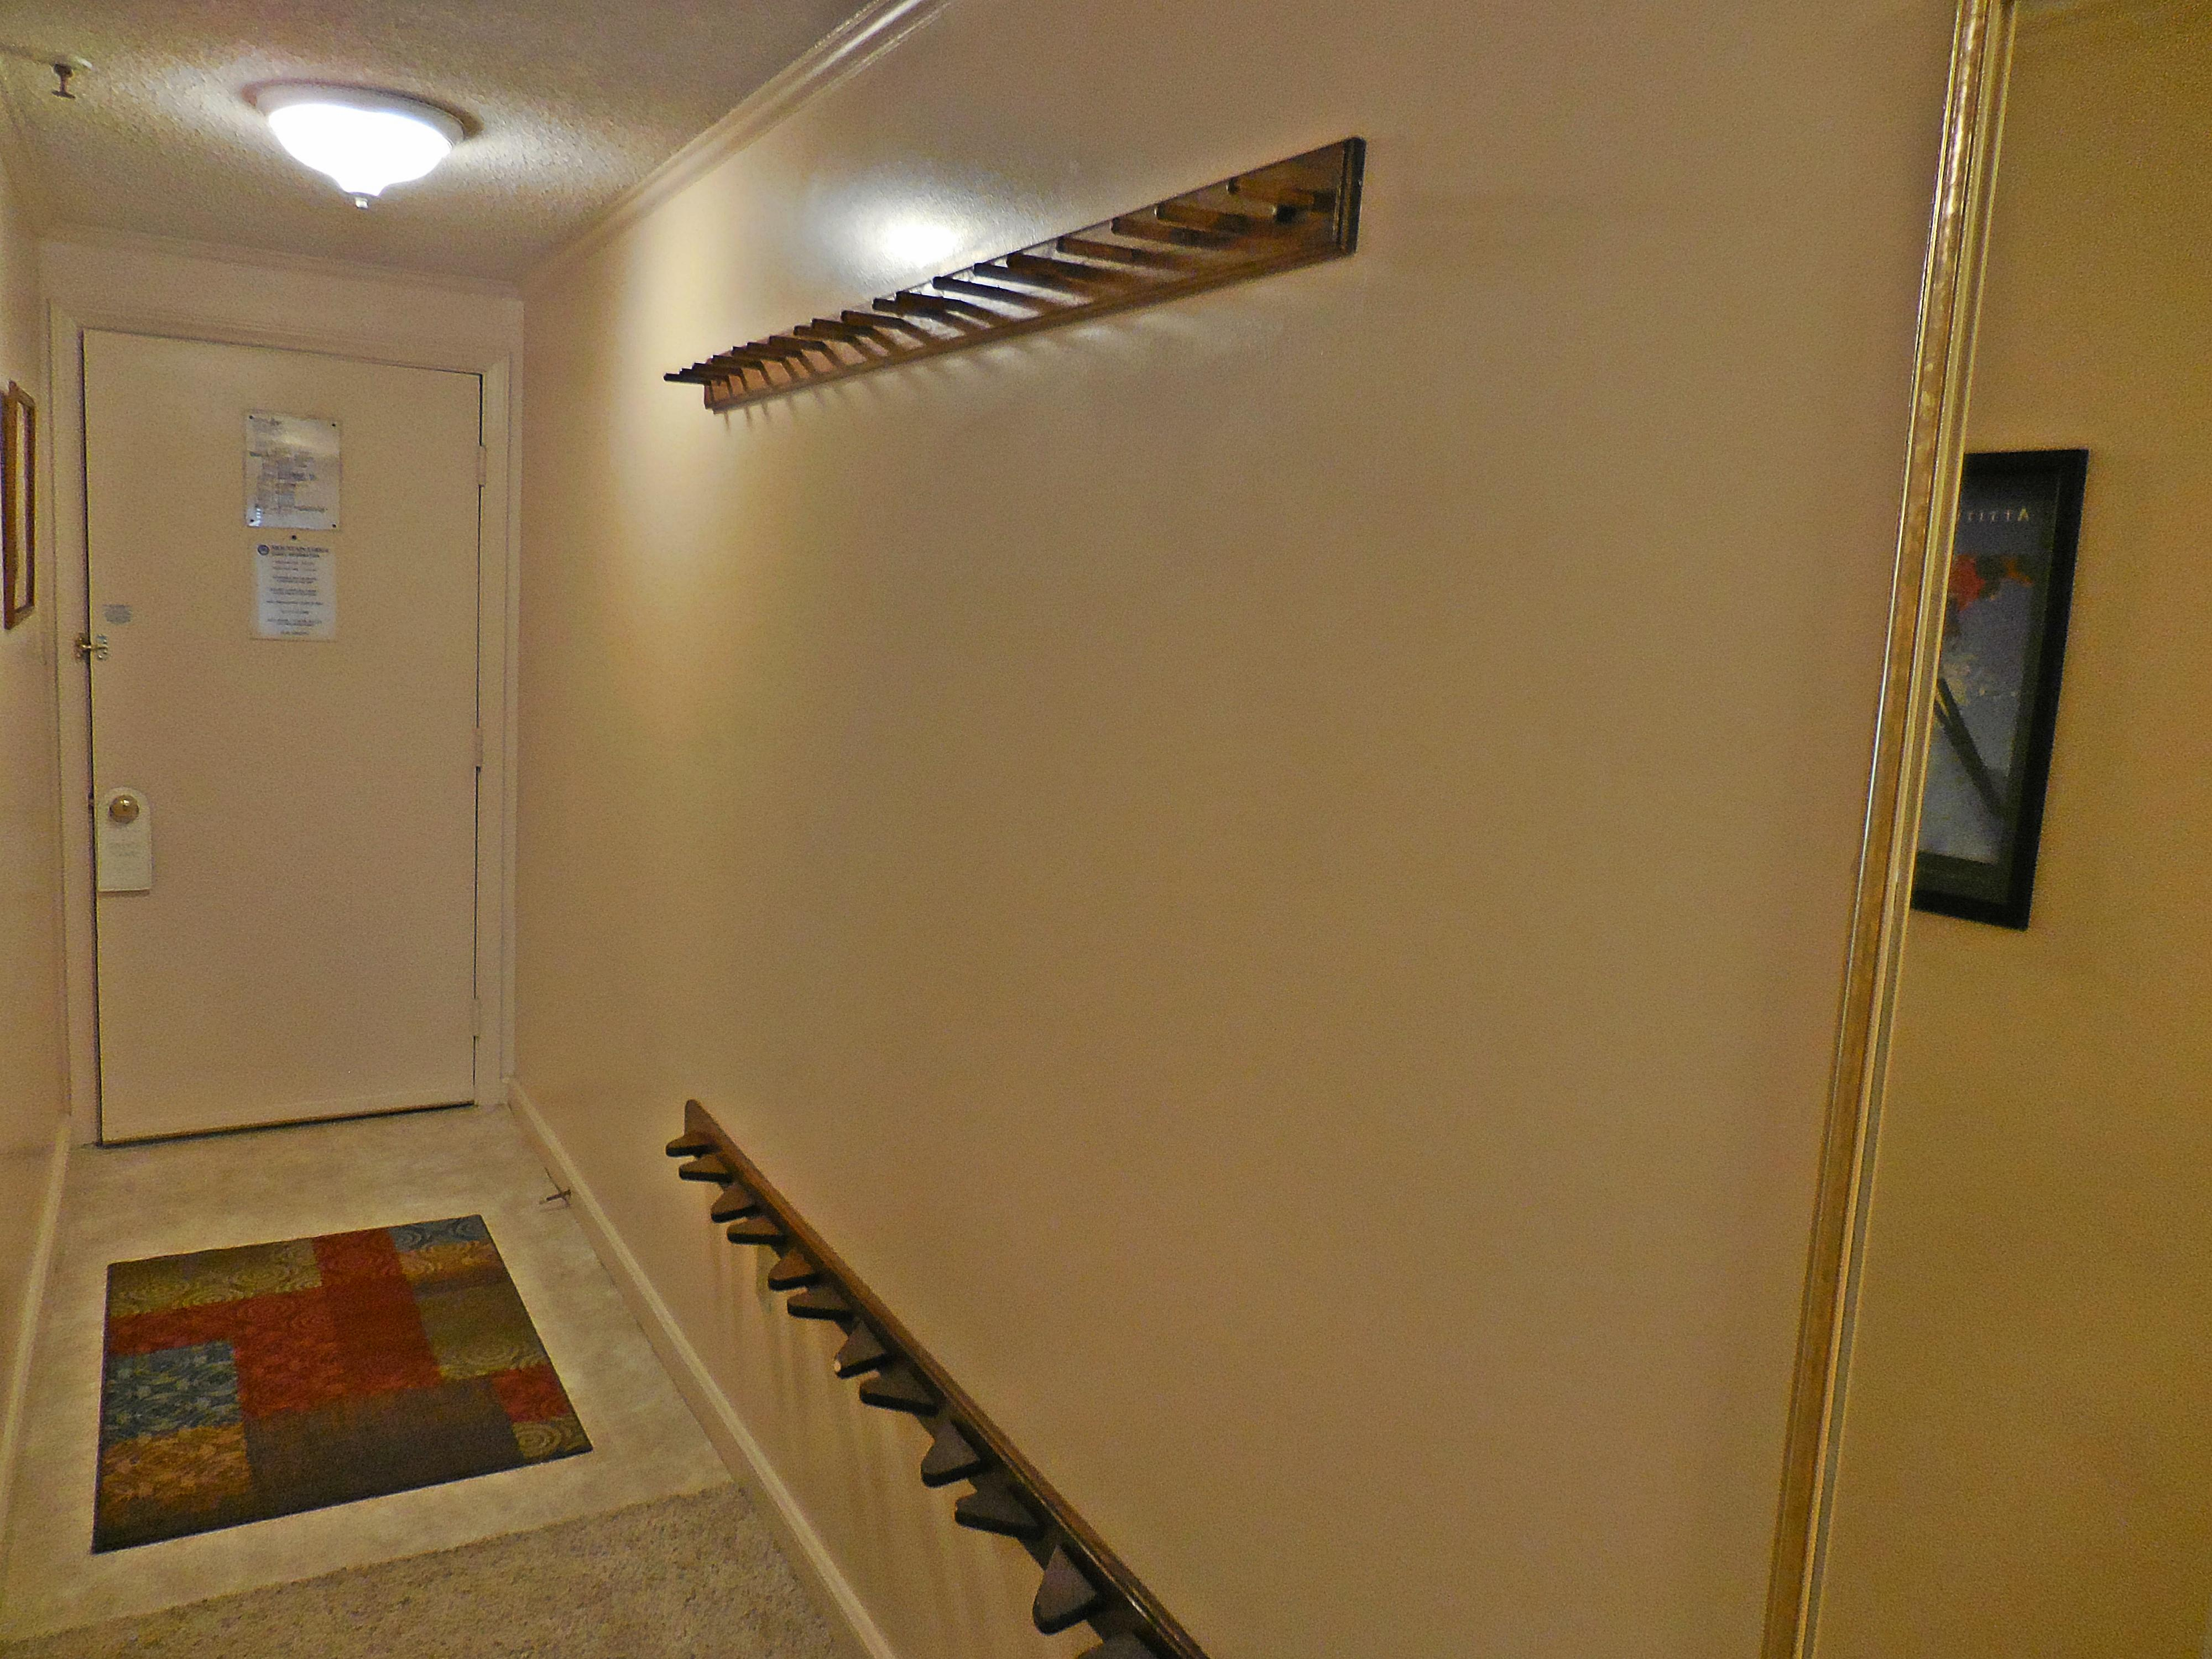 Ski rack in hallway to securely store your gear!